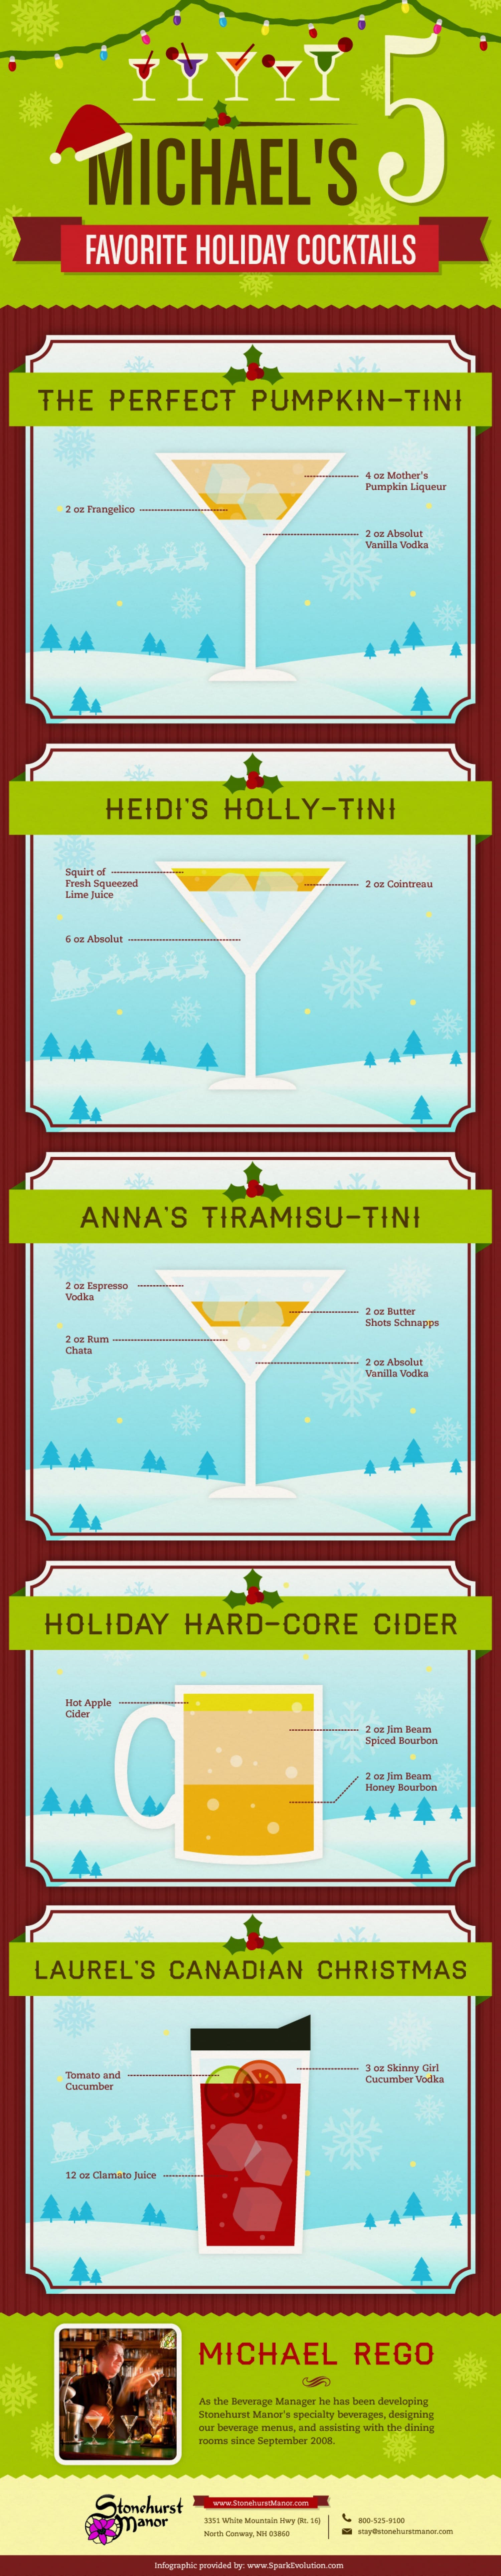 diy mixology michaels top 5 holiday cocktails